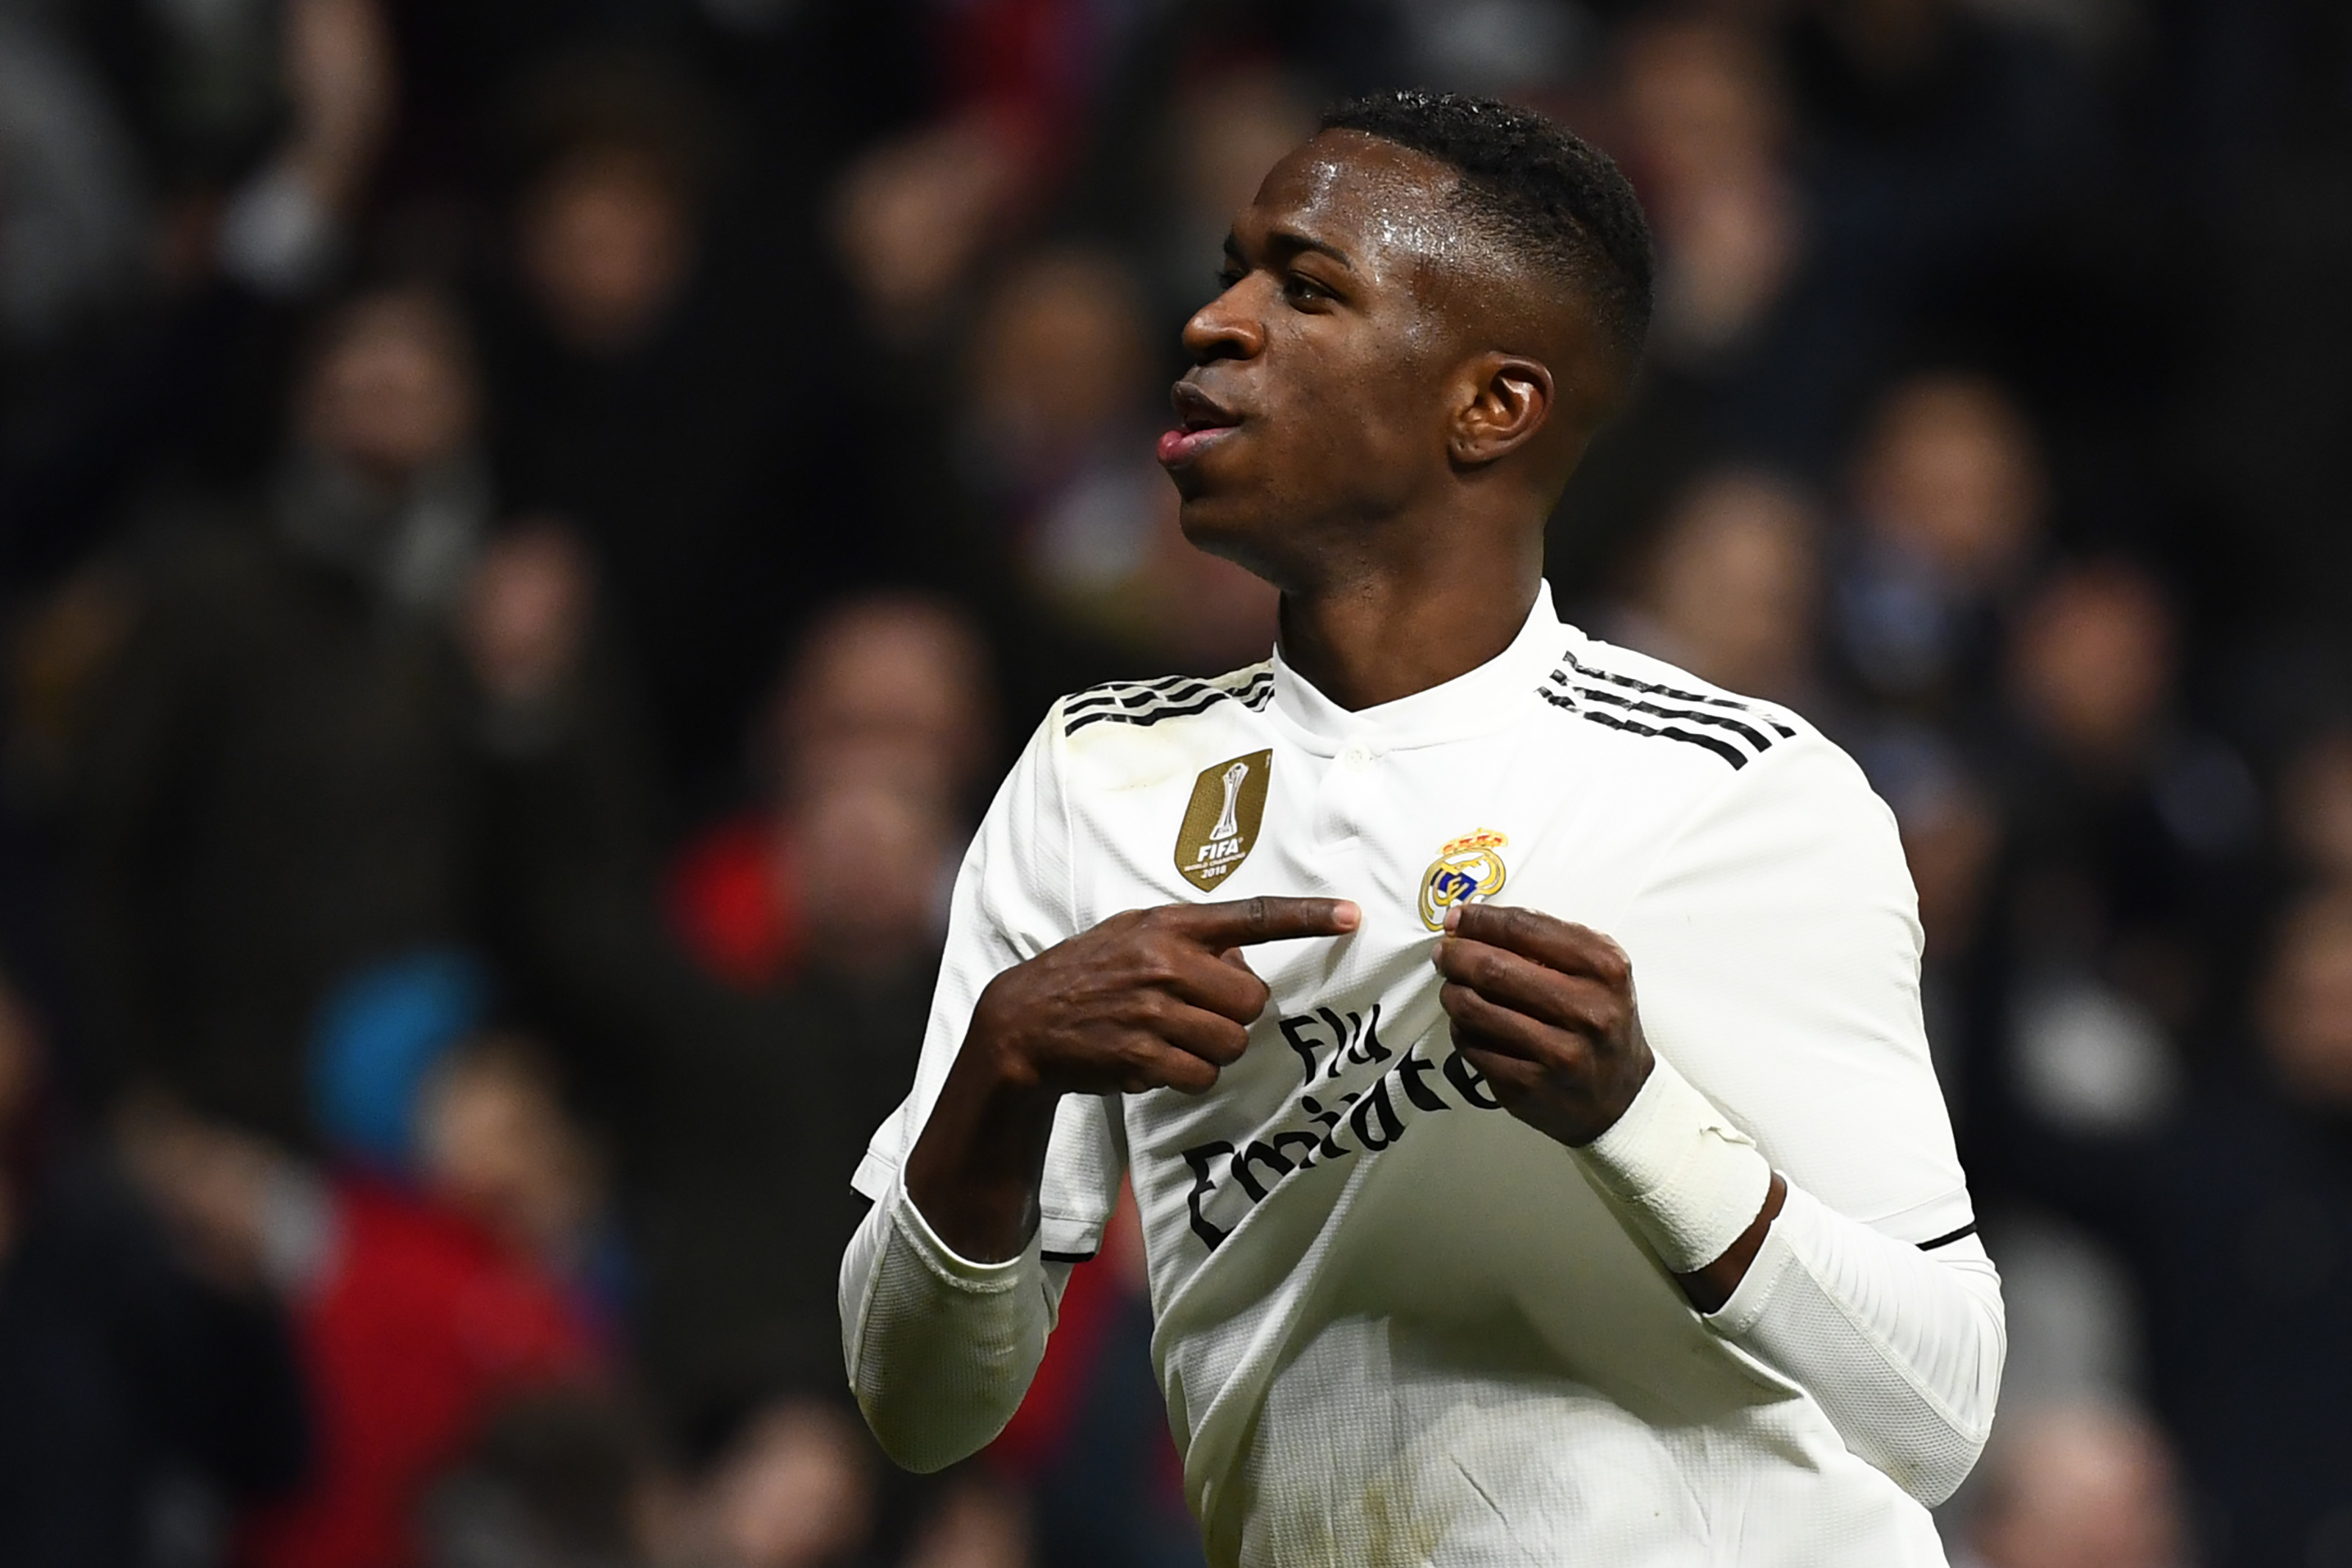 Real Madrid 3-0 Alaves: Vinicius Junior inspires home side to victory